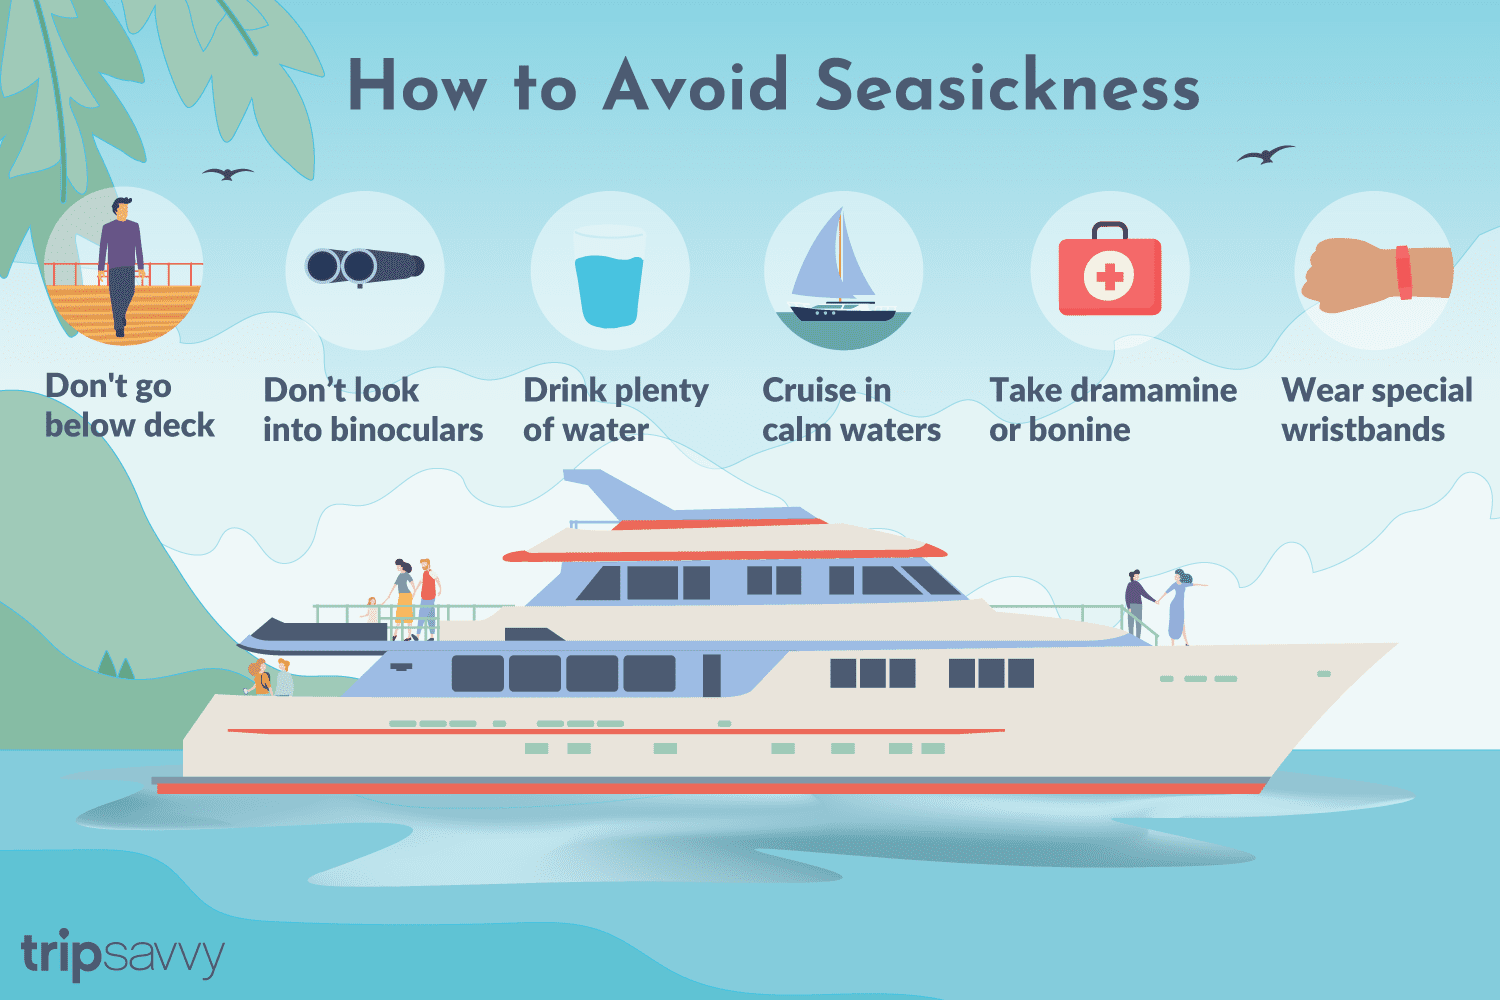 How to Avoid and Treat Seasickness